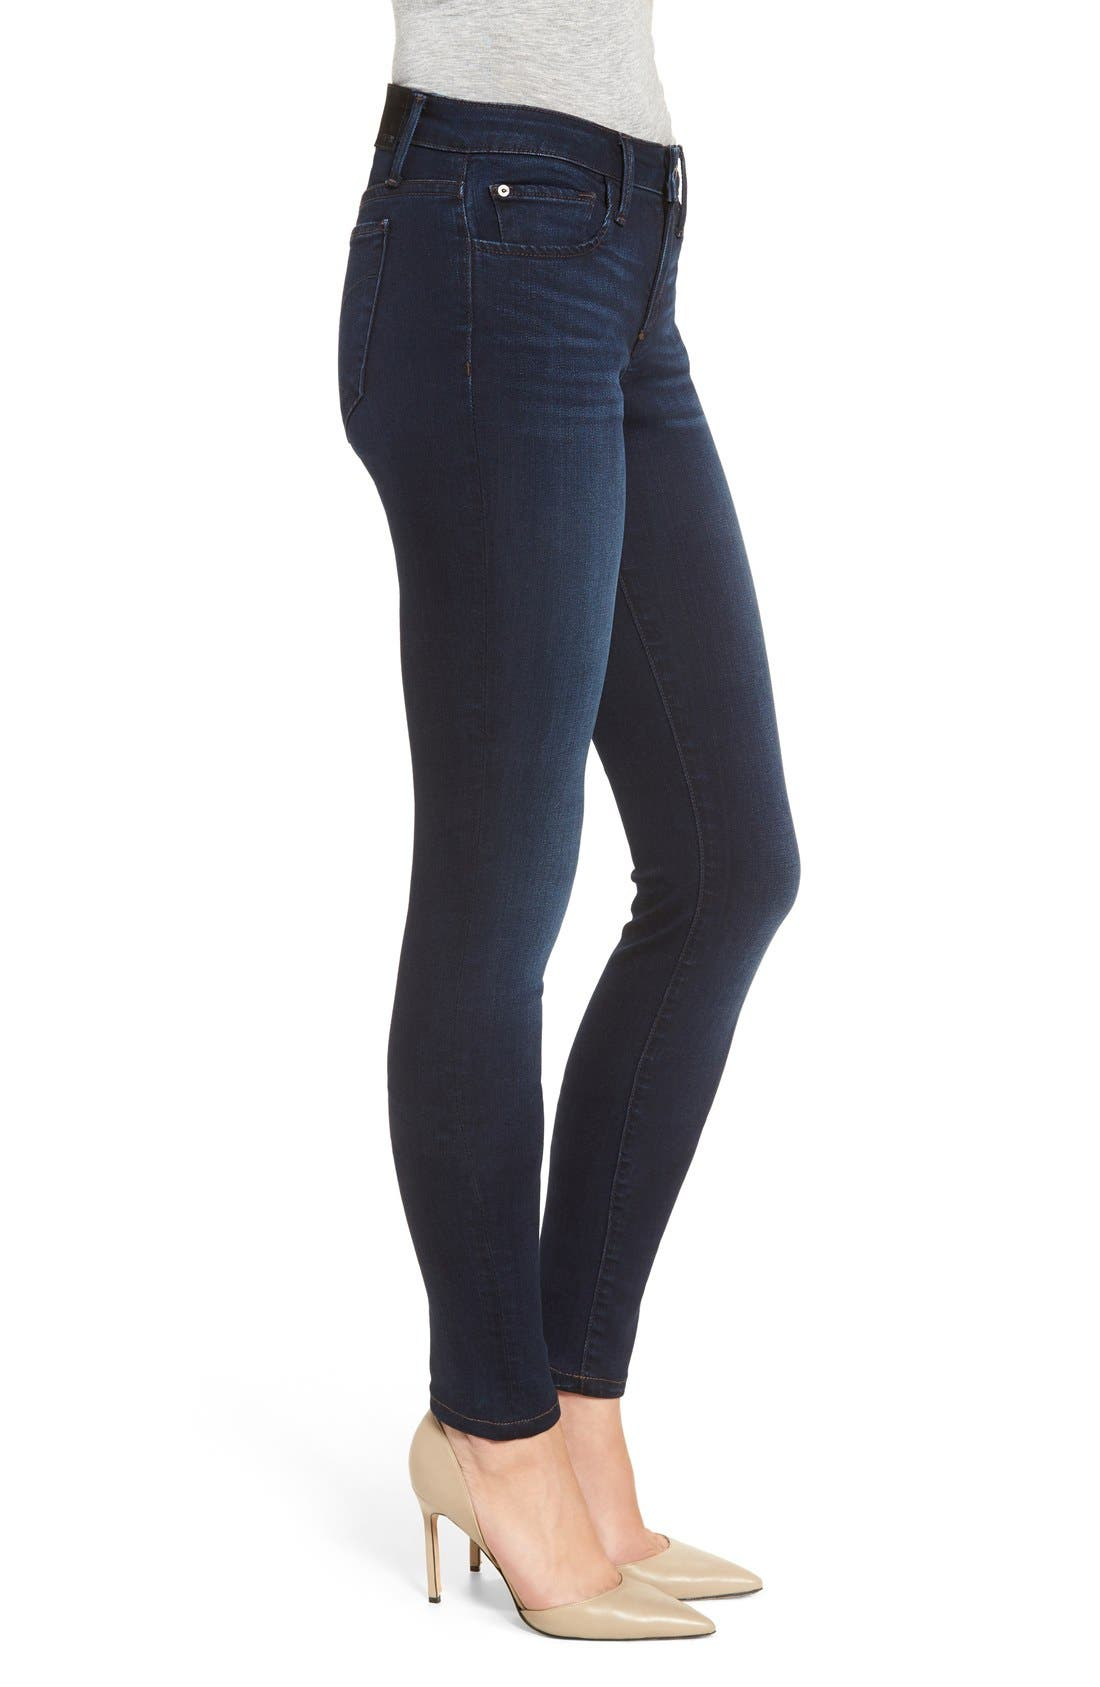 'Flawless - Twiggy' Skinny Jeans,                             Alternate thumbnail 3, color,                             400